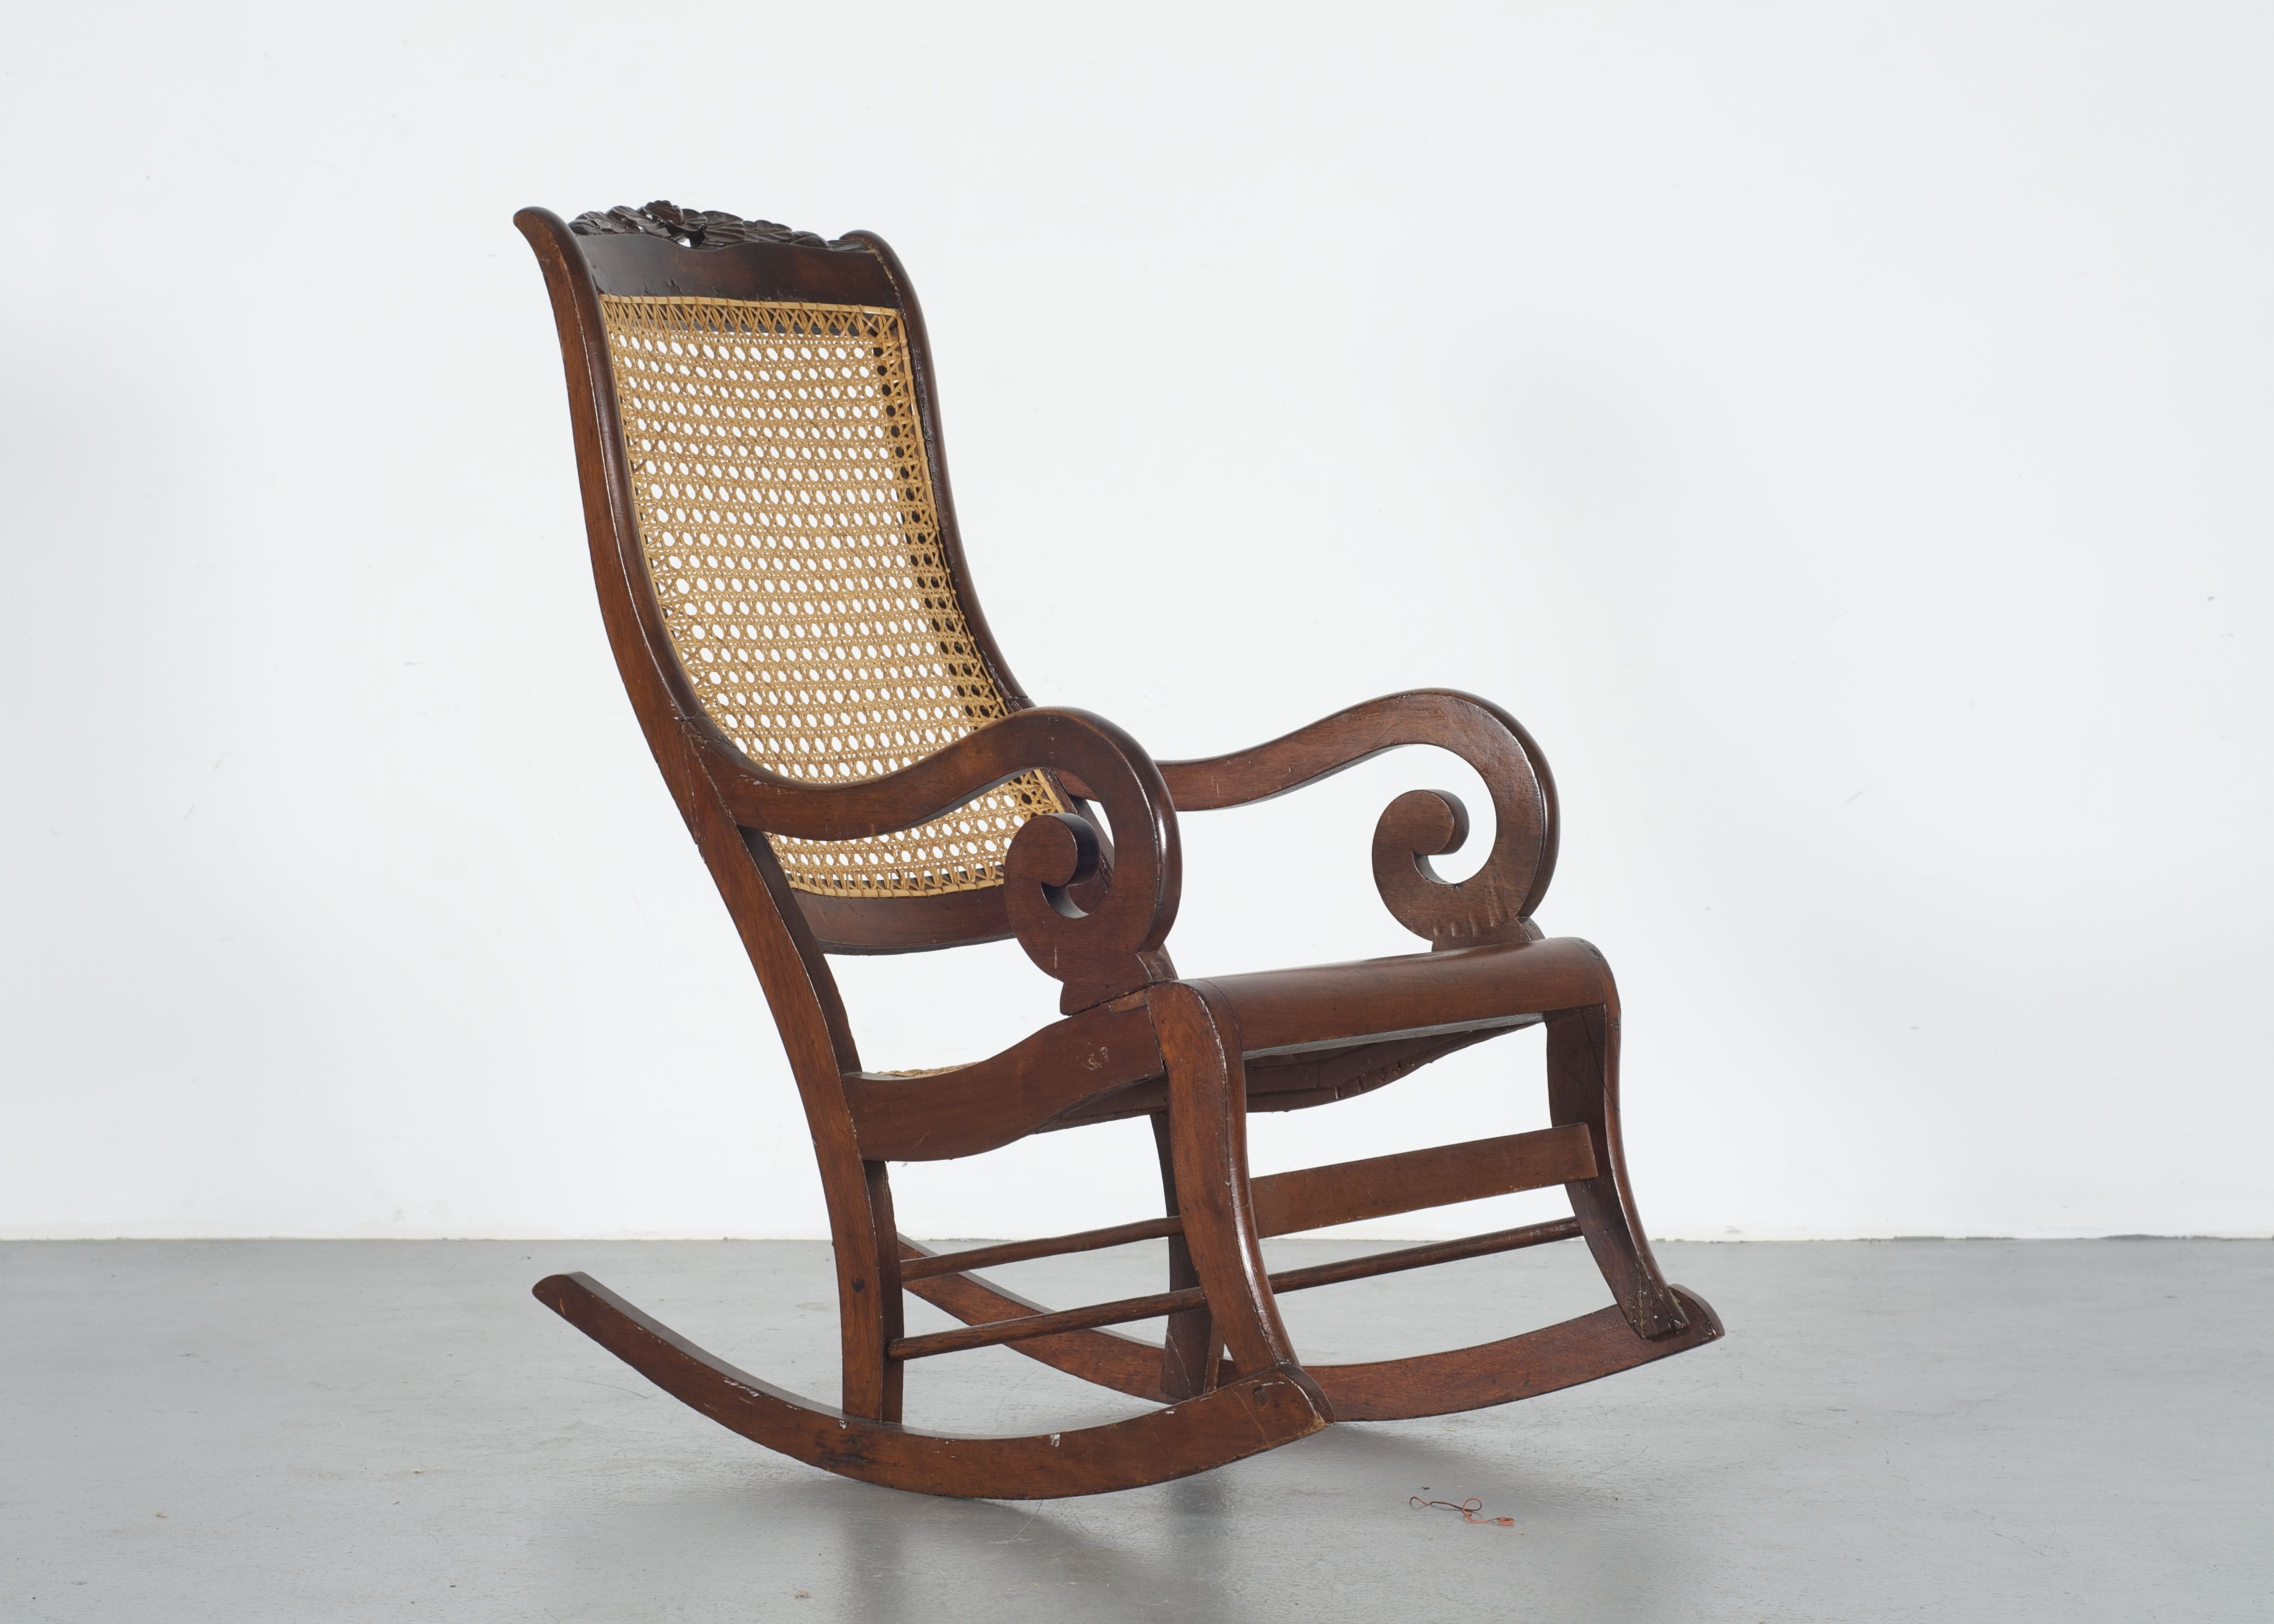 Lincoln Style Victorian Rocking Chair with Cane Back and Seat ... & Lincoln Style Victorian Rocking Chair with Cane Back and Seat : EBTH